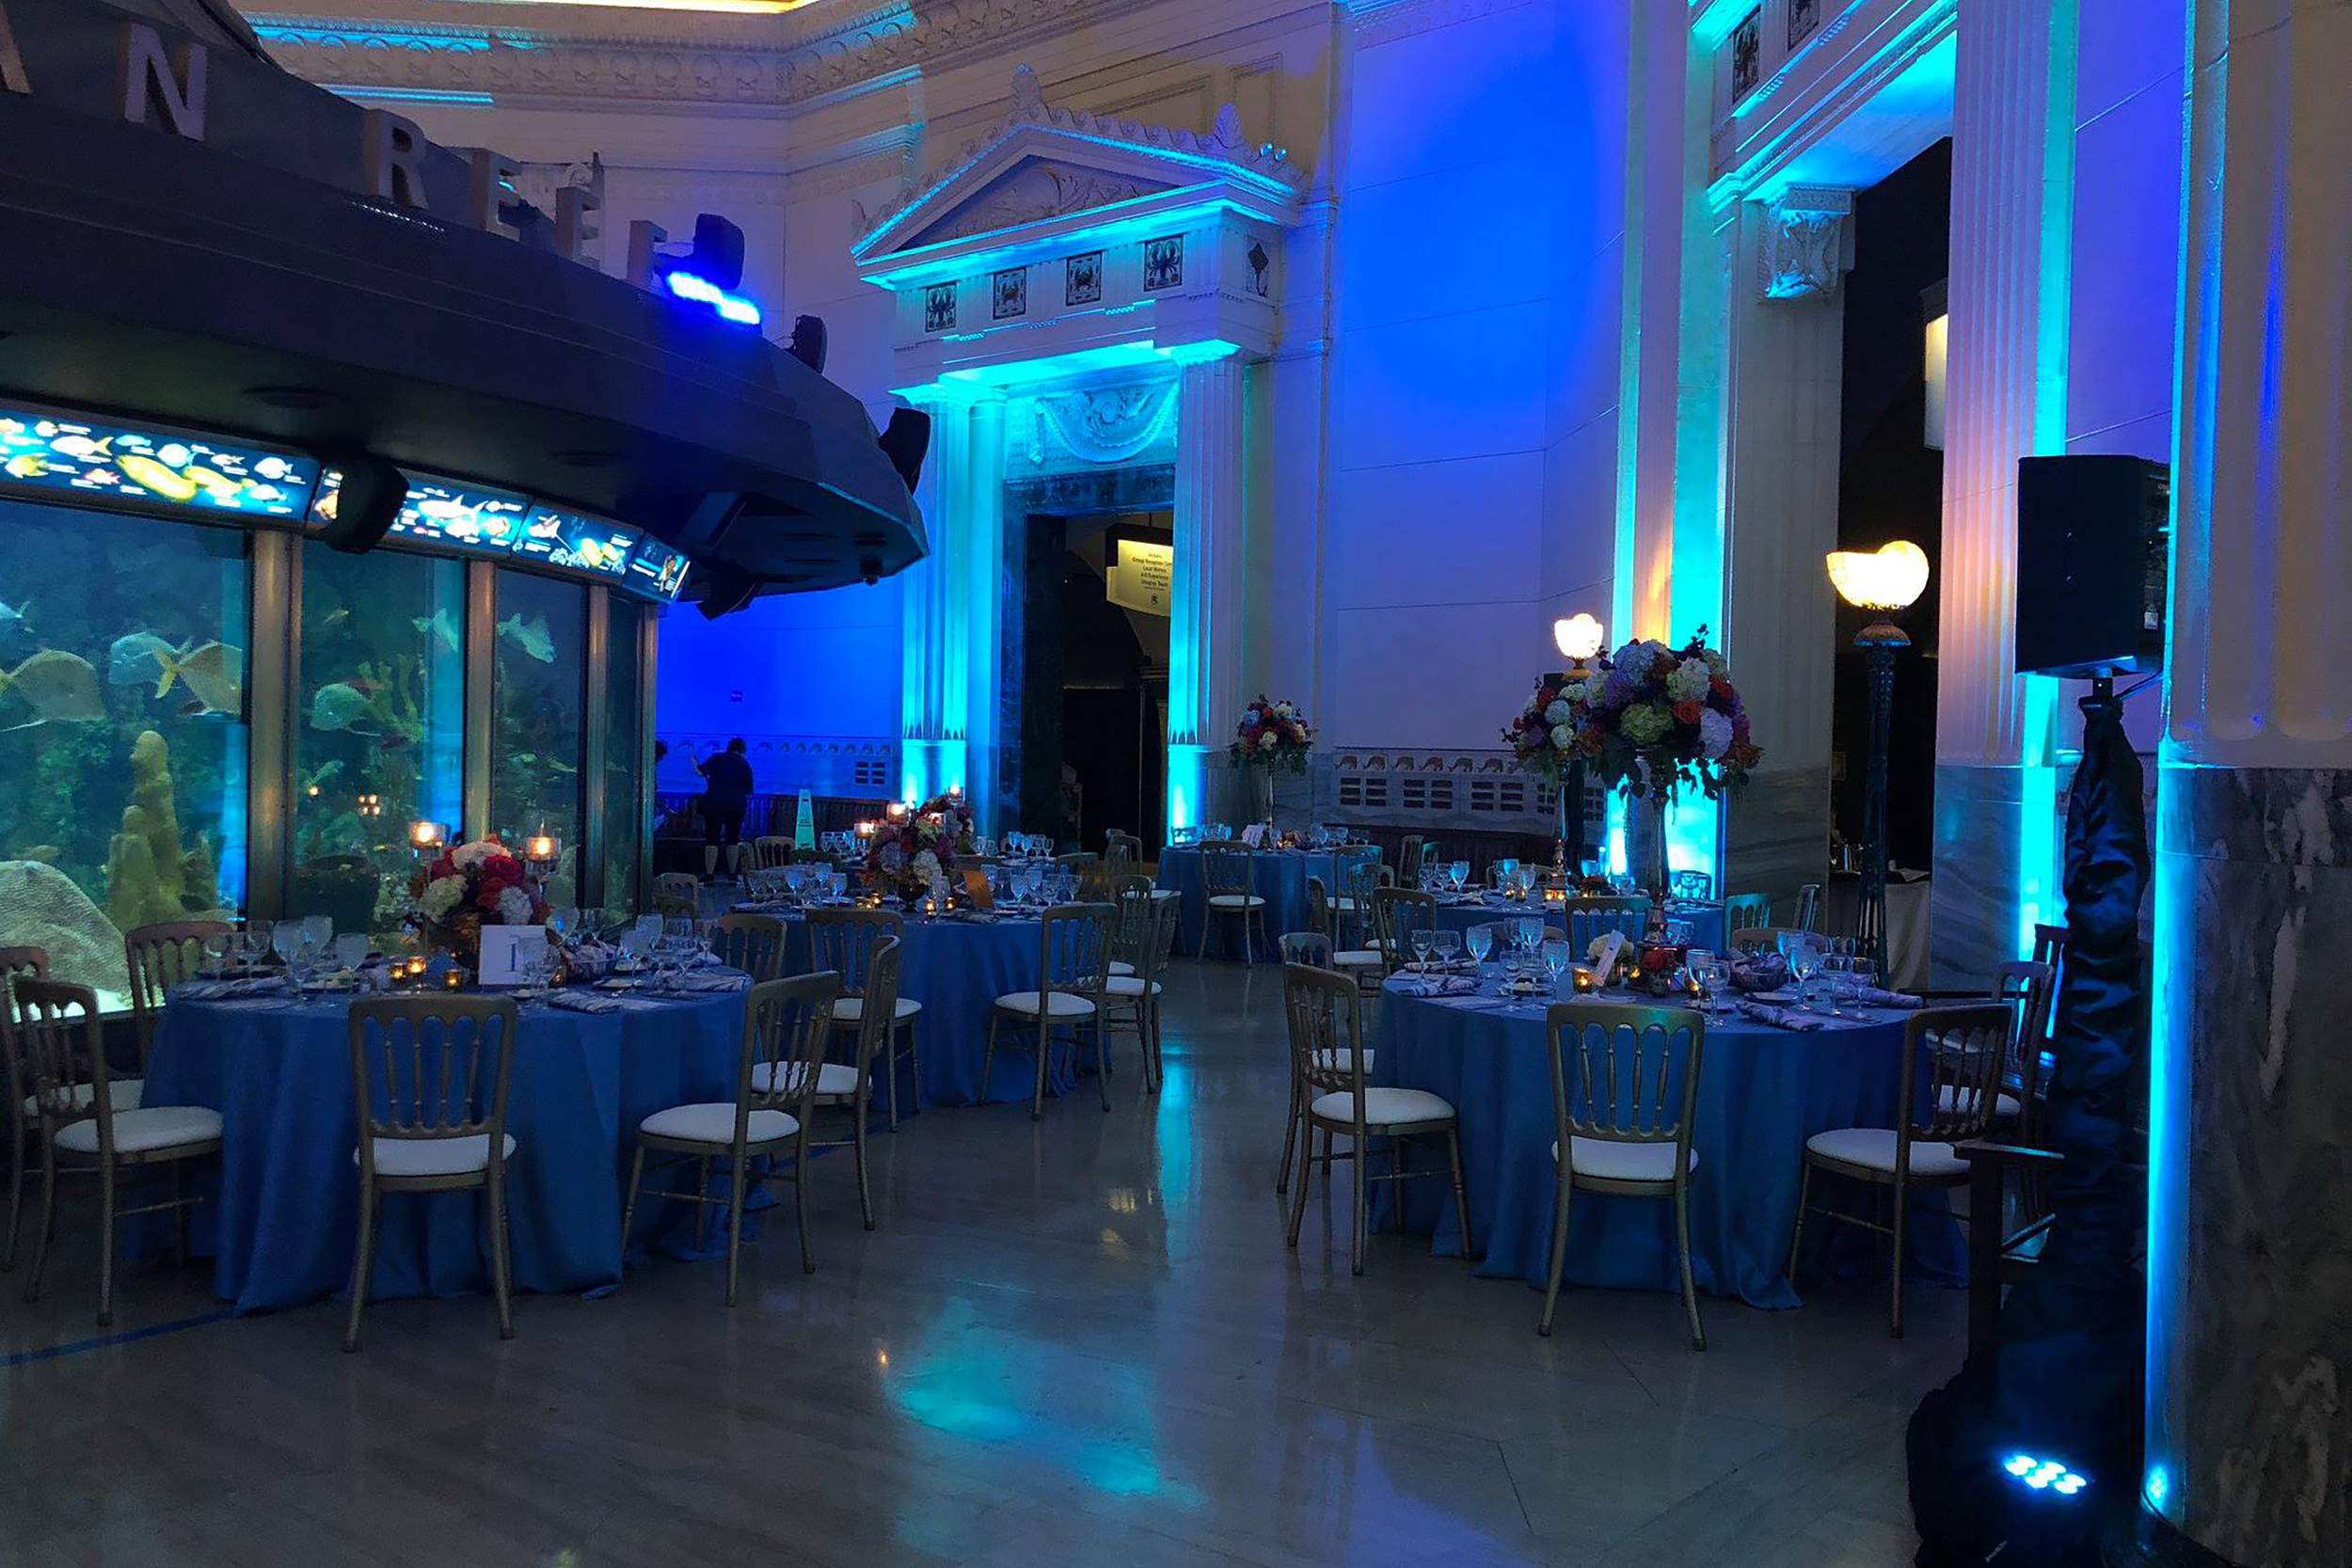 Private Events - It's your party. It's your event. You want to be able to enjoy it without the pressure of making sure it happens. Vantage AV partners with you to make sure that our staff has your vision ready to execute, so you can join the party and truly experience your Vision all night long.Past Client: It's Private… We Don't Tell